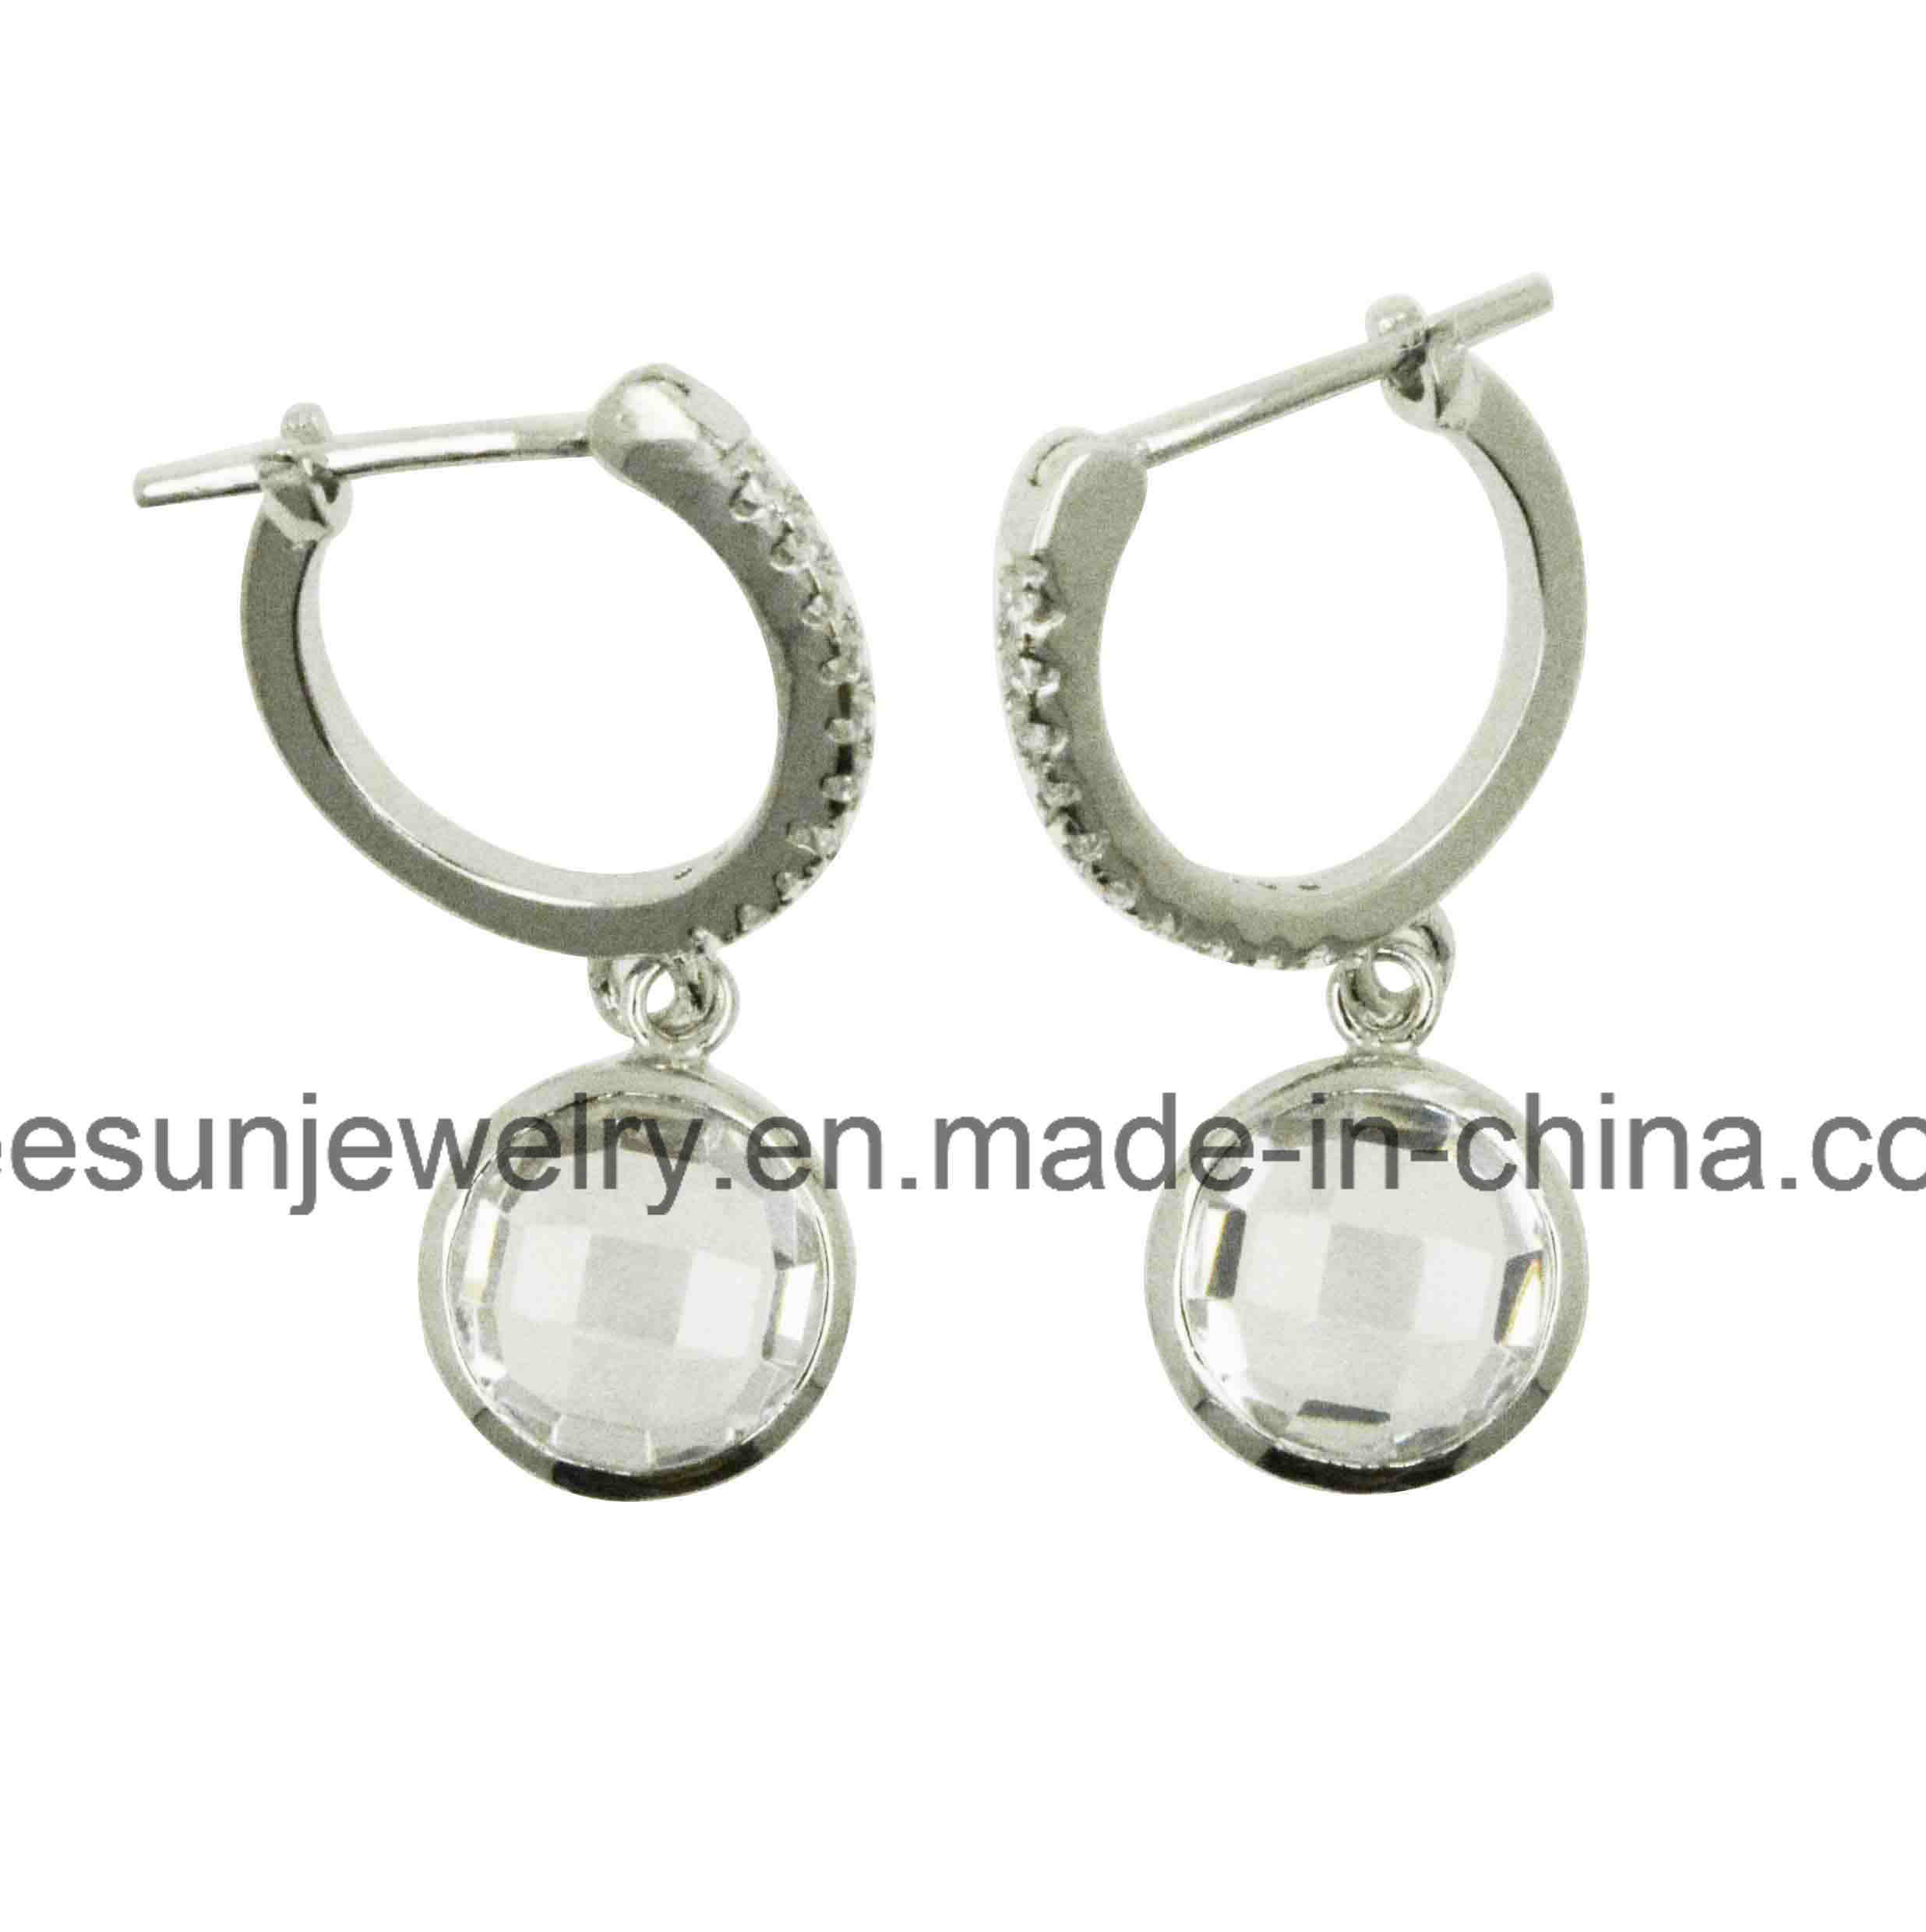 China 925 Sterling Silver Jewelry Dangling Earring Huggies With Franch Lock